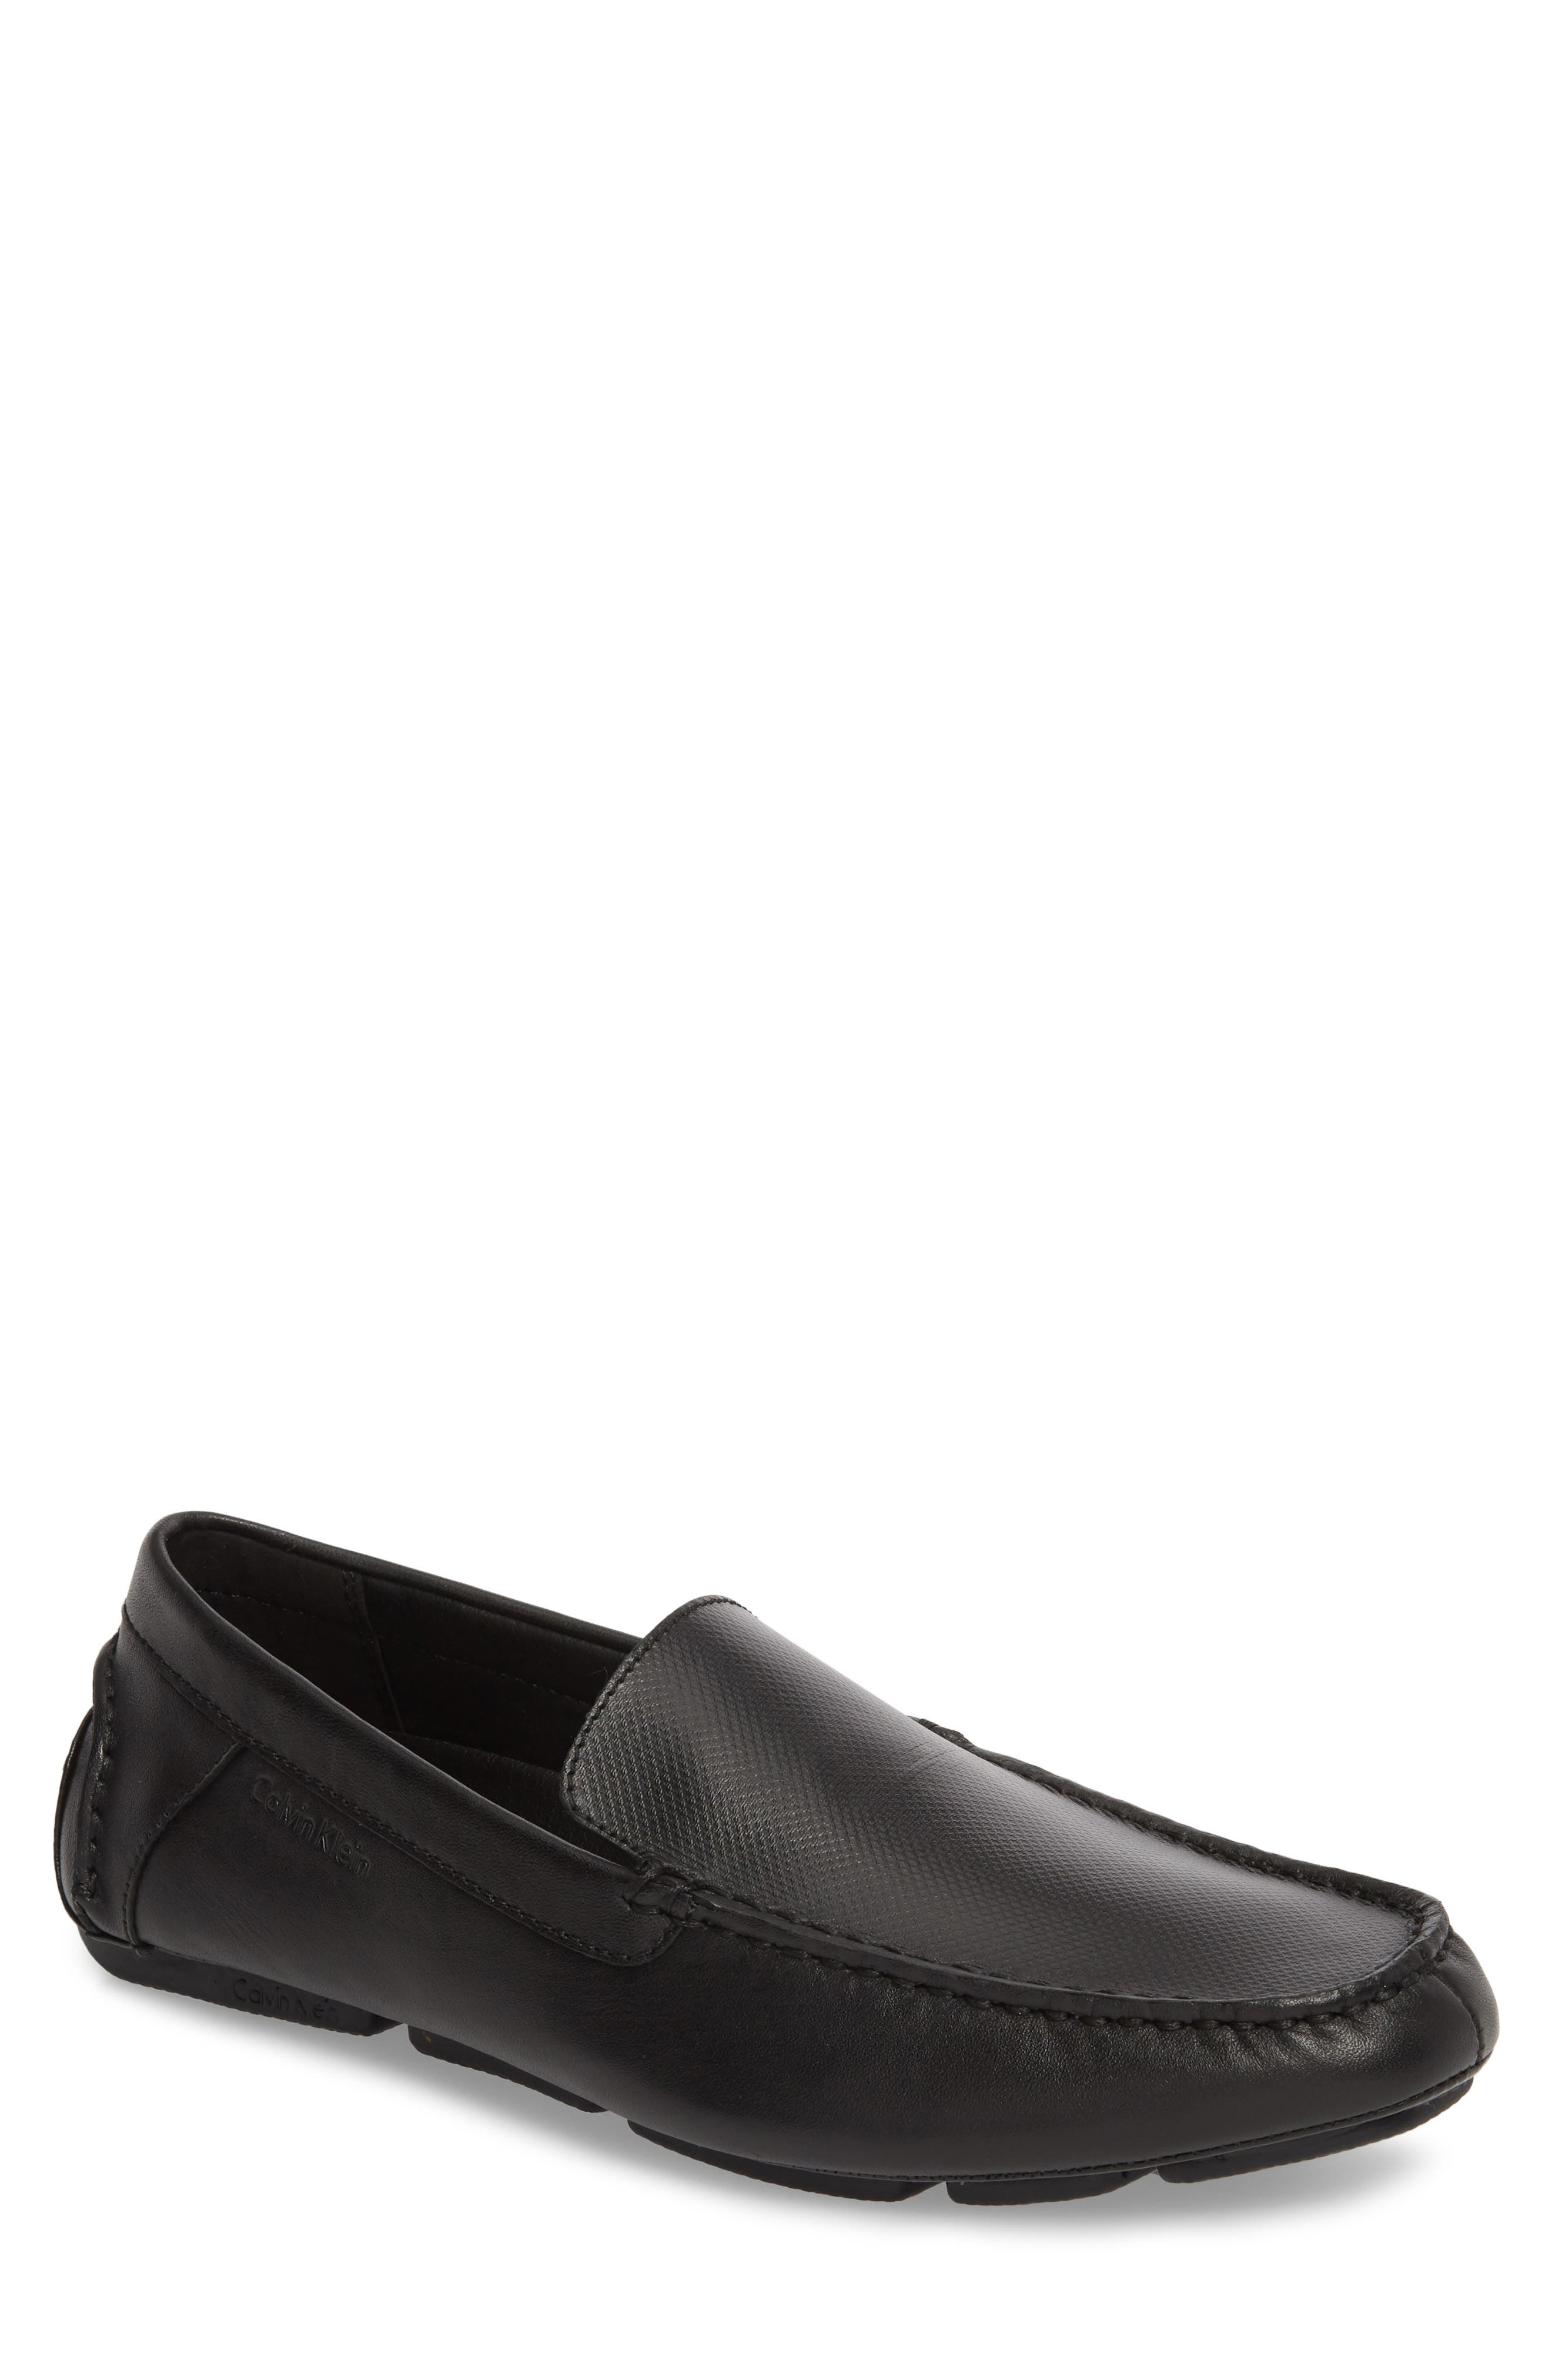 Miguel Textured Driving Loafer,                             Main thumbnail 1, color,                             Black Leather